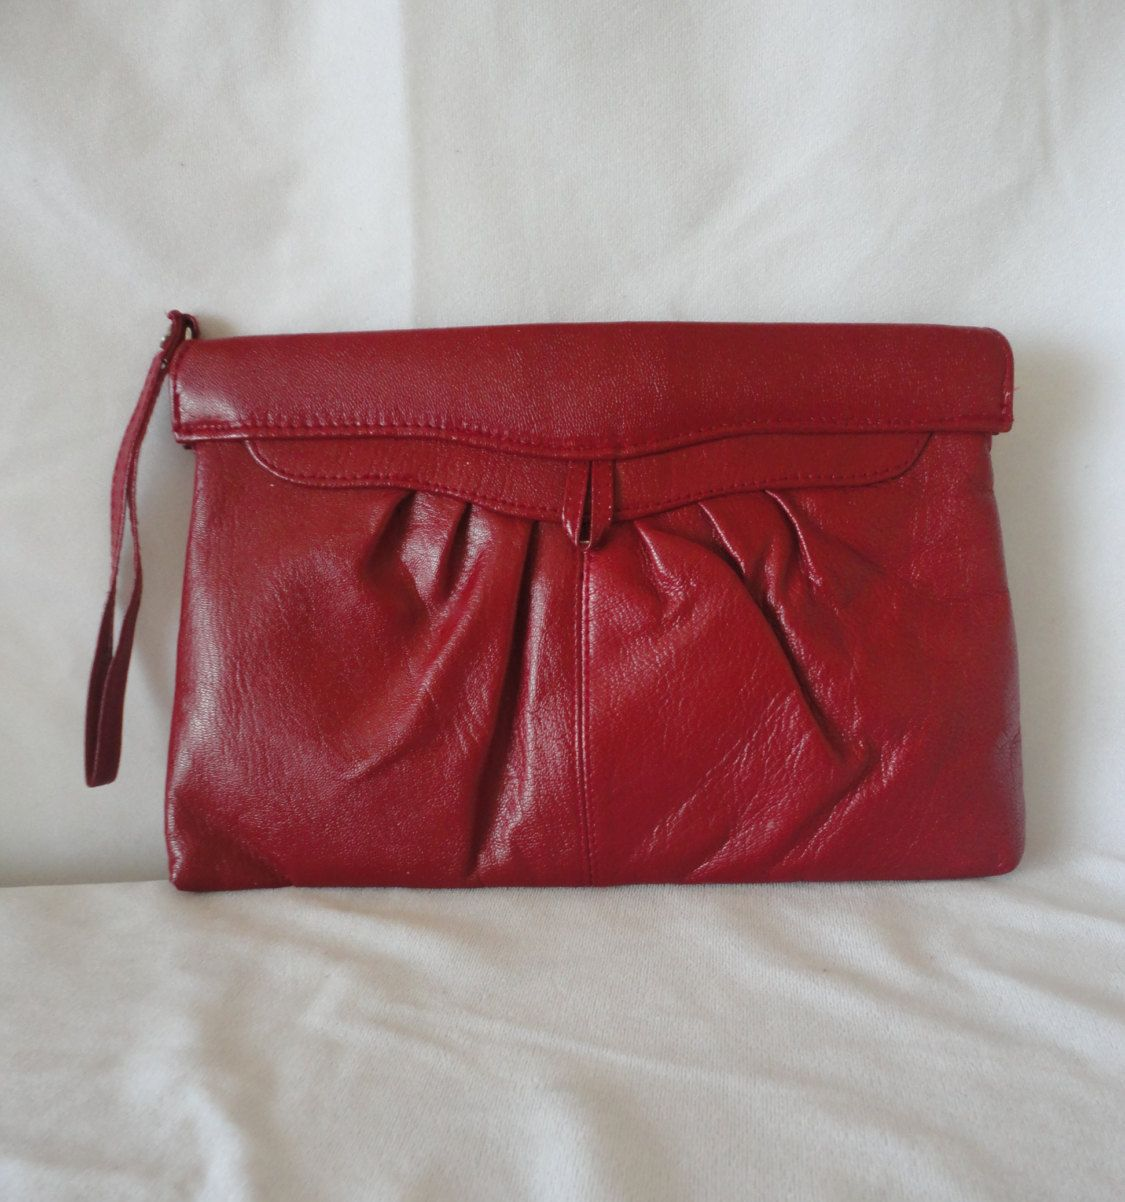 PreOwned Red Leather Clutch*******. by RamsesTreasure on Etsy